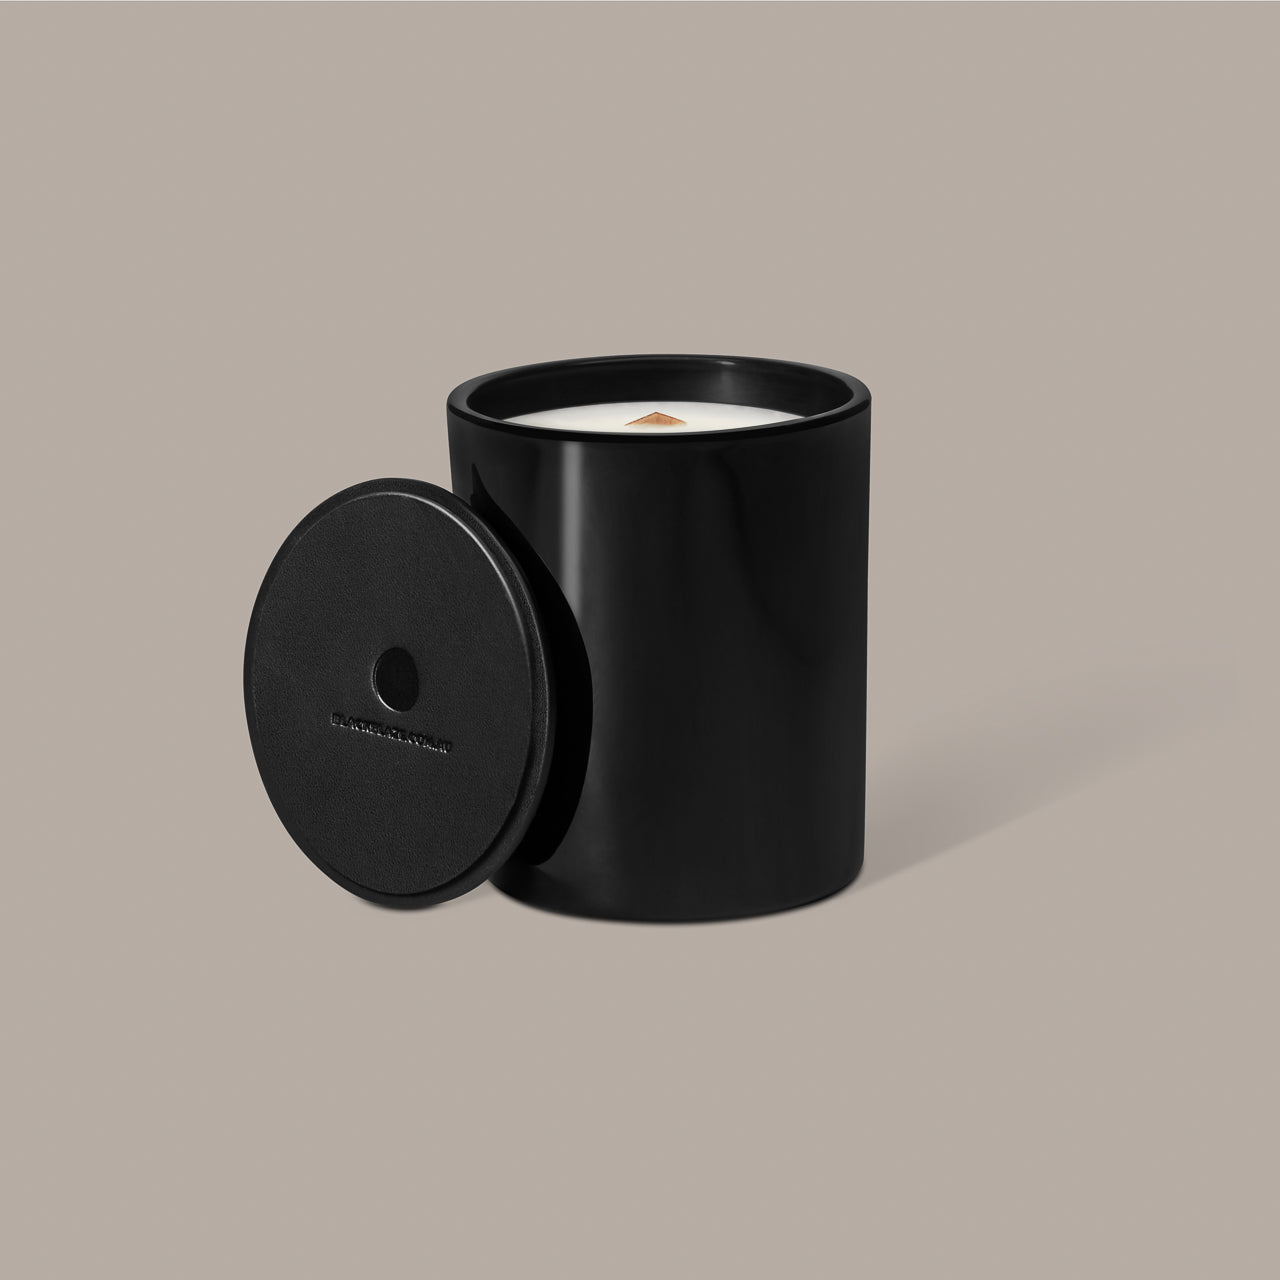 SAUDADE Scented Candle, HOME CANDLE, BLACK BLAZE, BLACK BLAZE - BLACK BLAZE | Scents of Australia | Natural Home Fragrance Label  | Australia's 1St Wooden Wick Candle